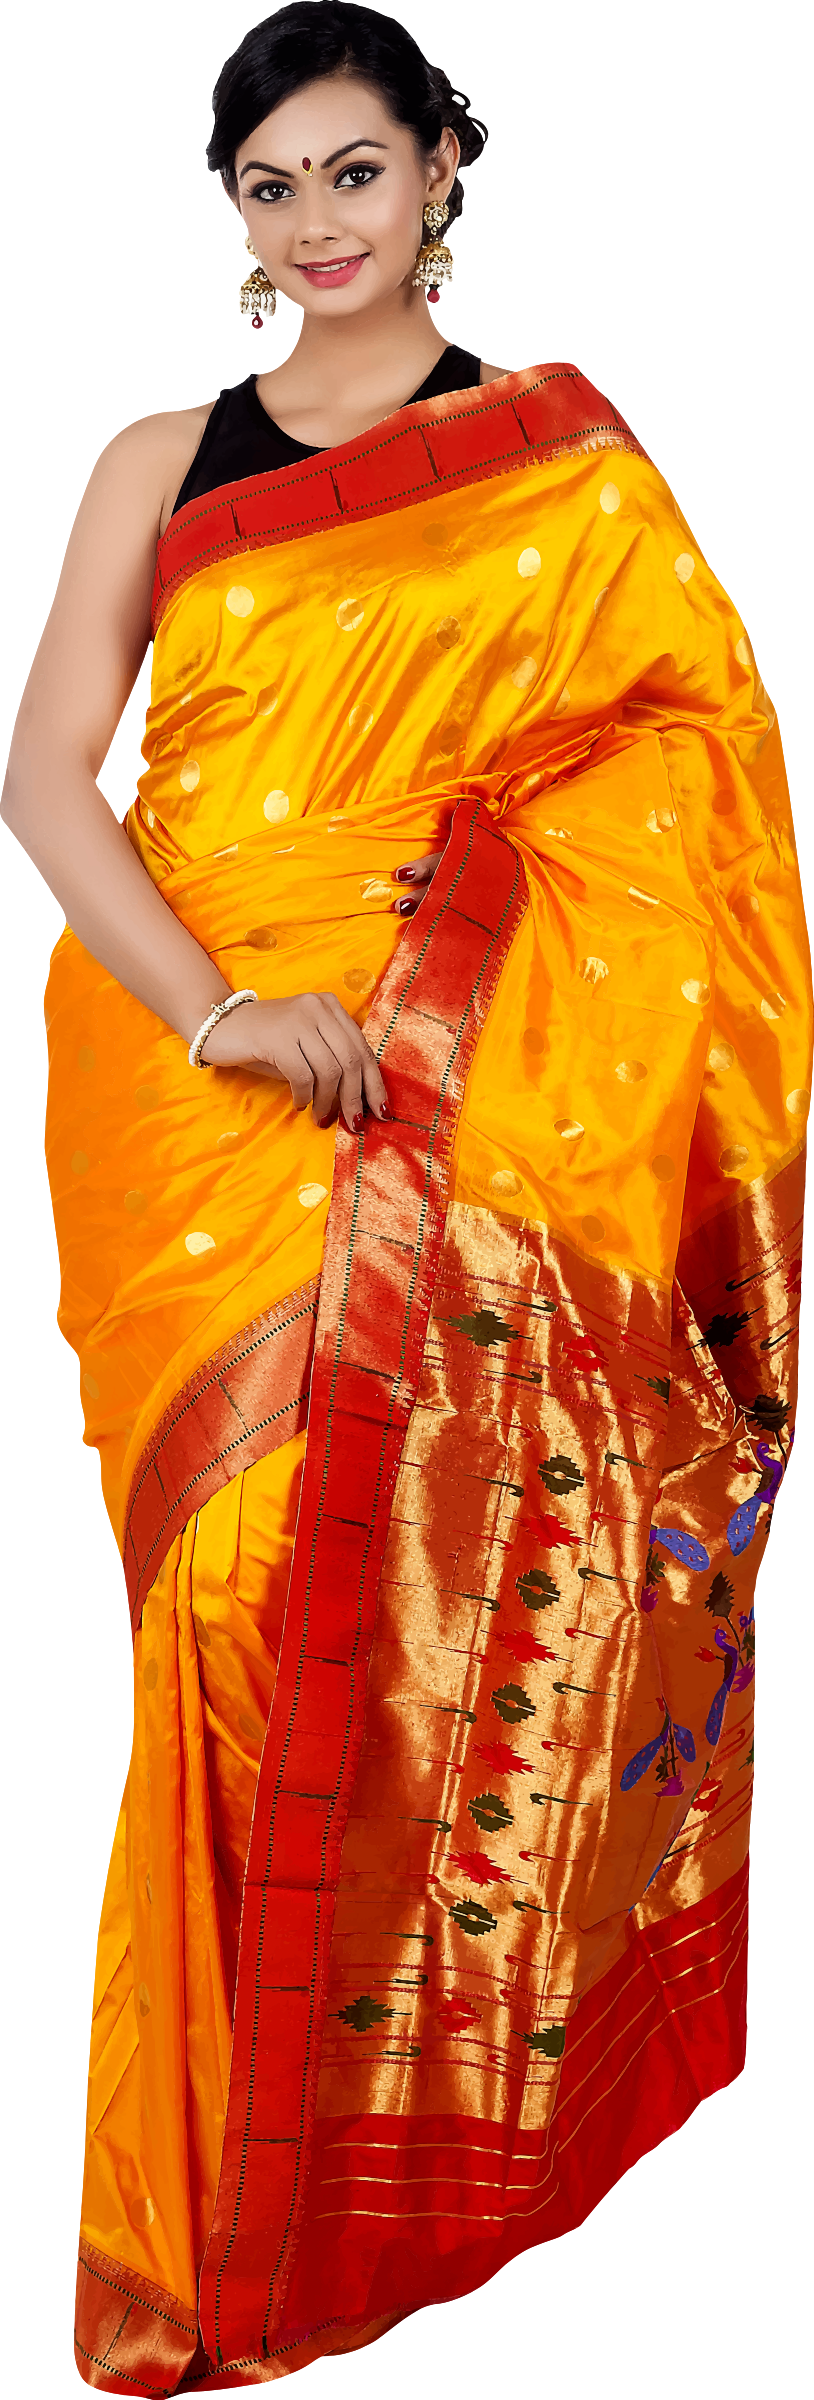 Woman in saree 5 by Firkin